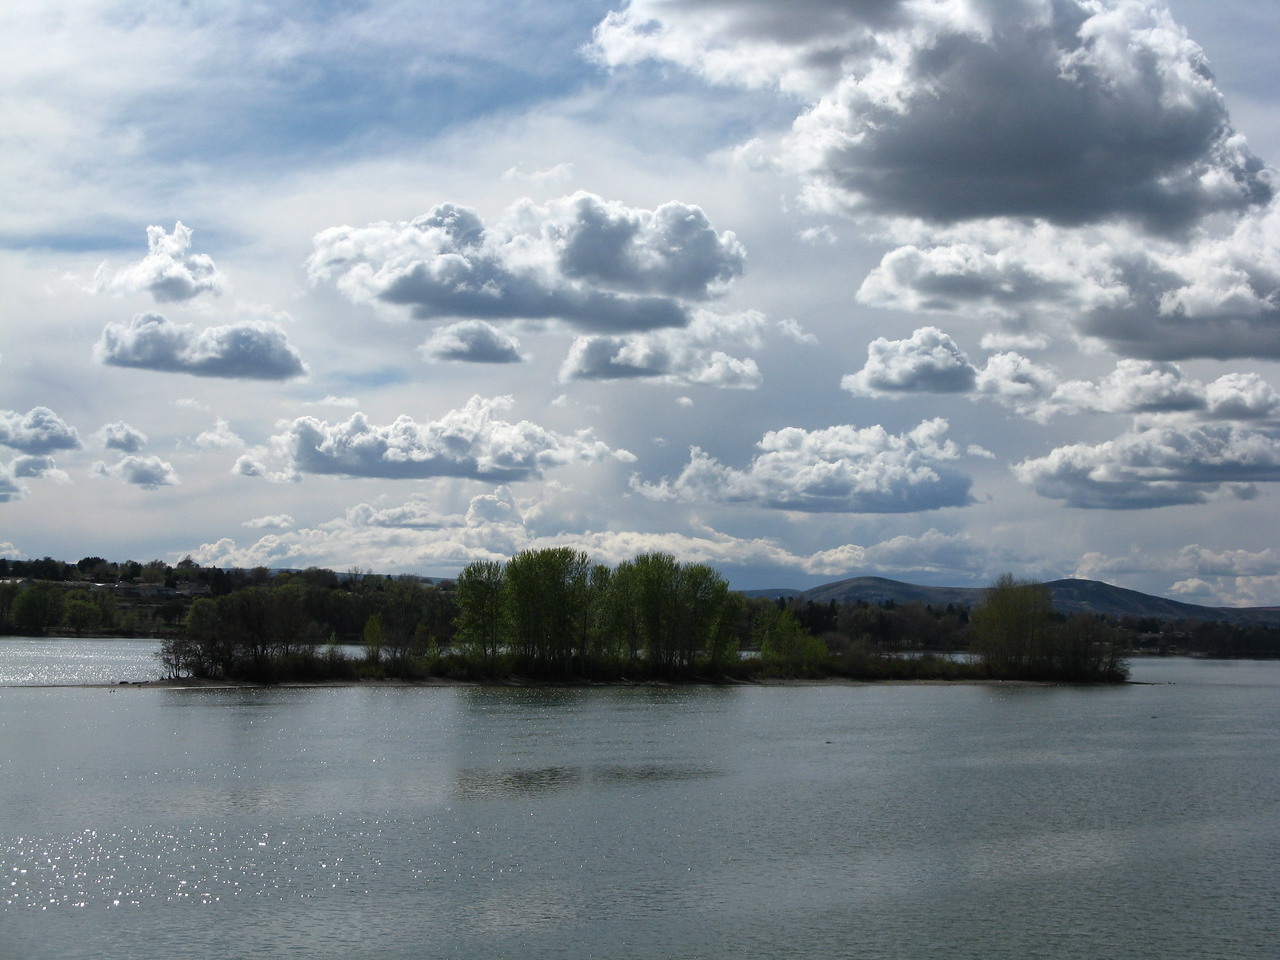 An island in the Columbia River with broken clouds above.